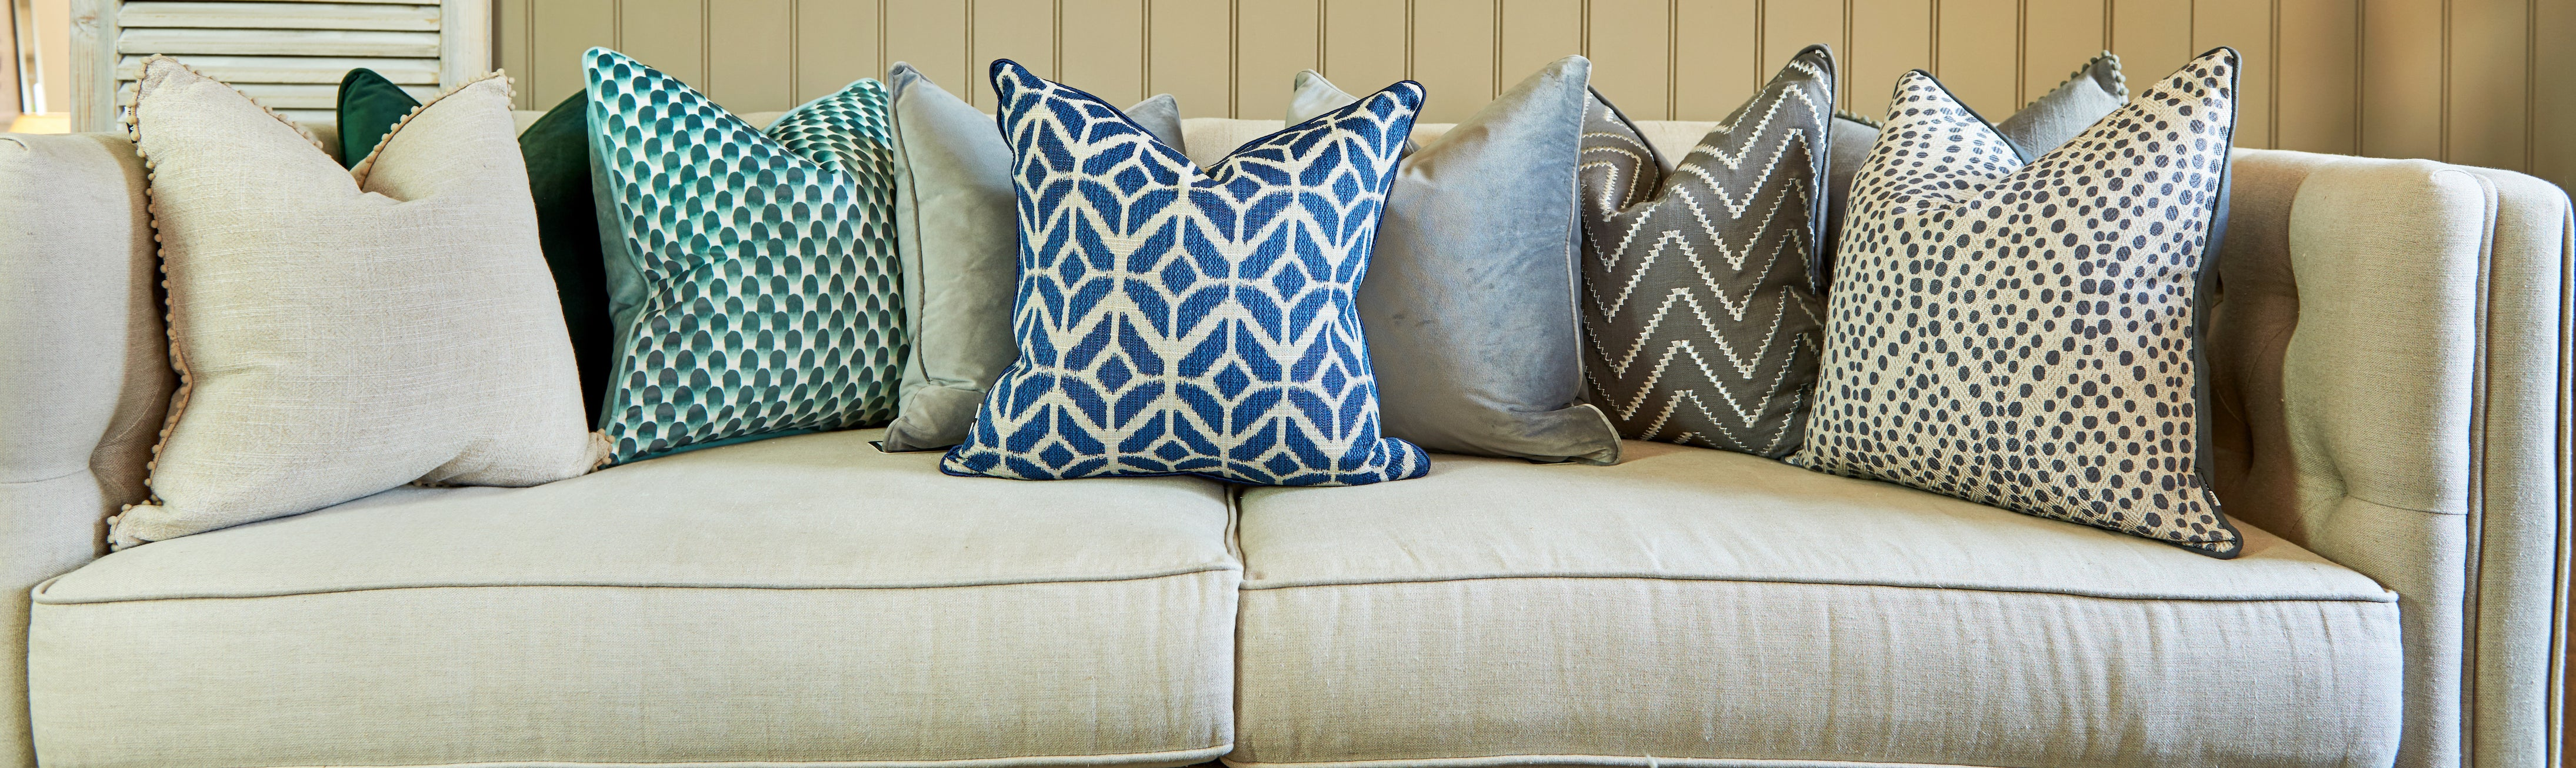 Cushions to covet